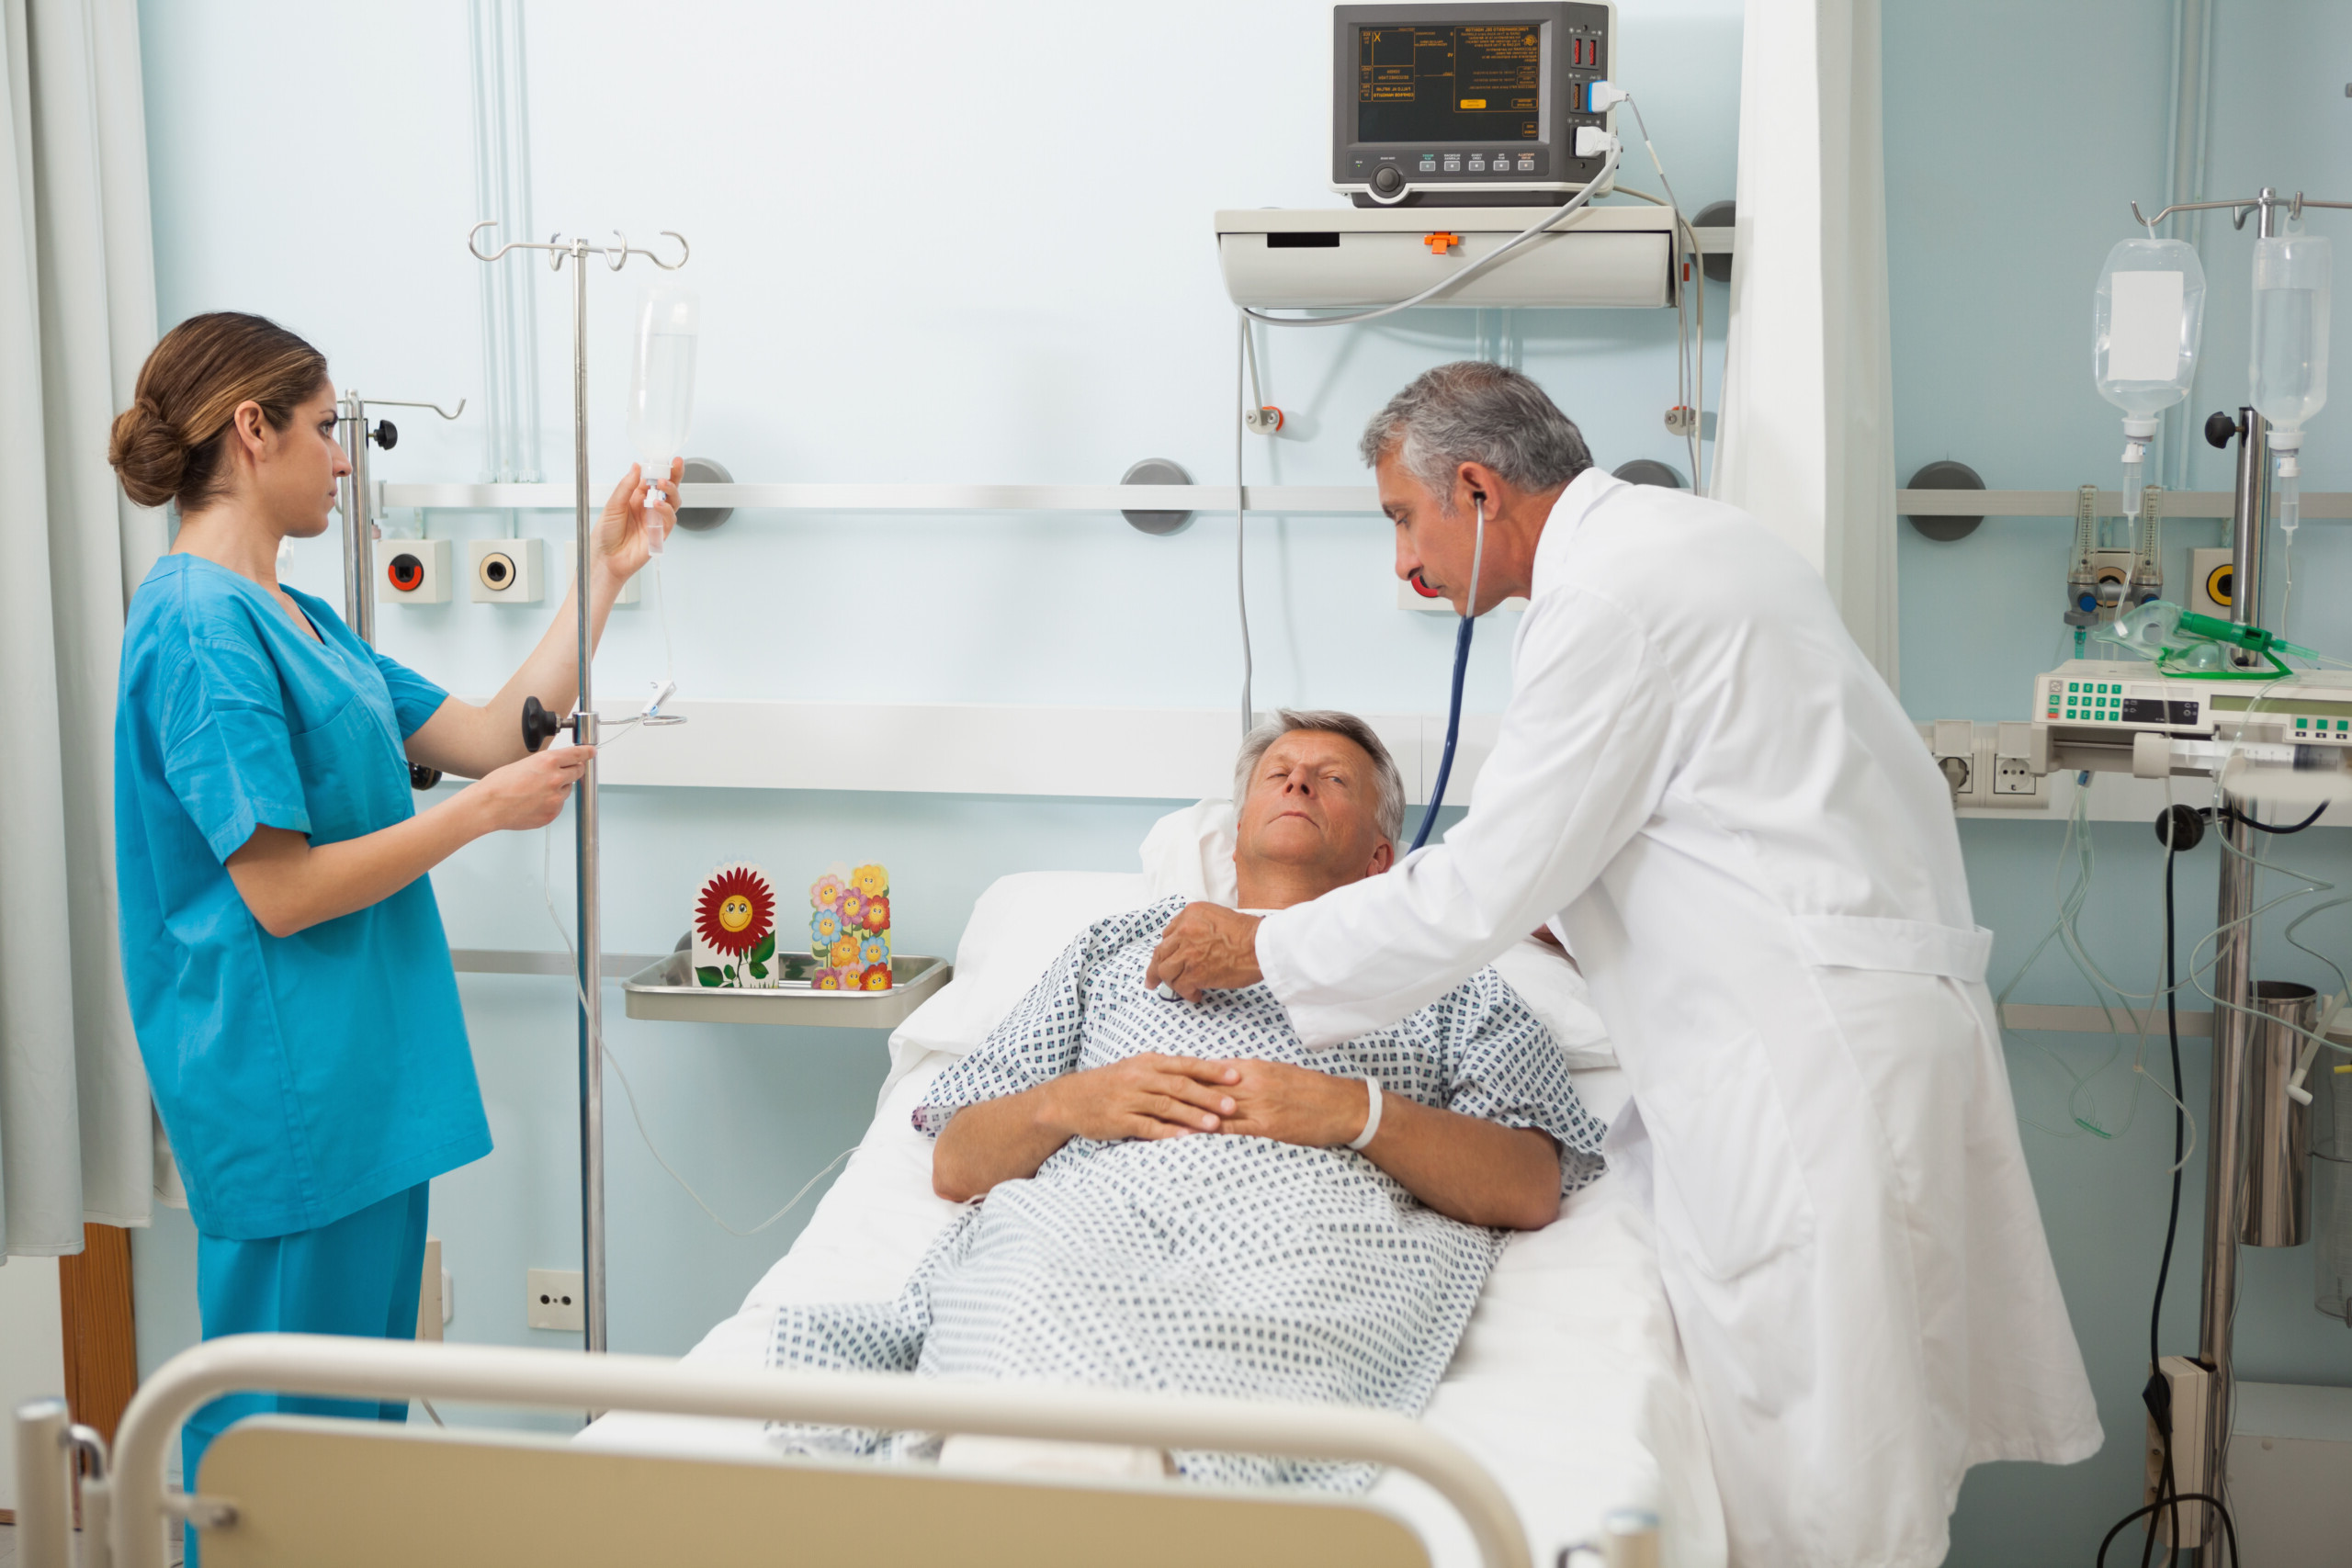 Can Heart Attack Be Ruled Out in the ER without Imaging Tests?